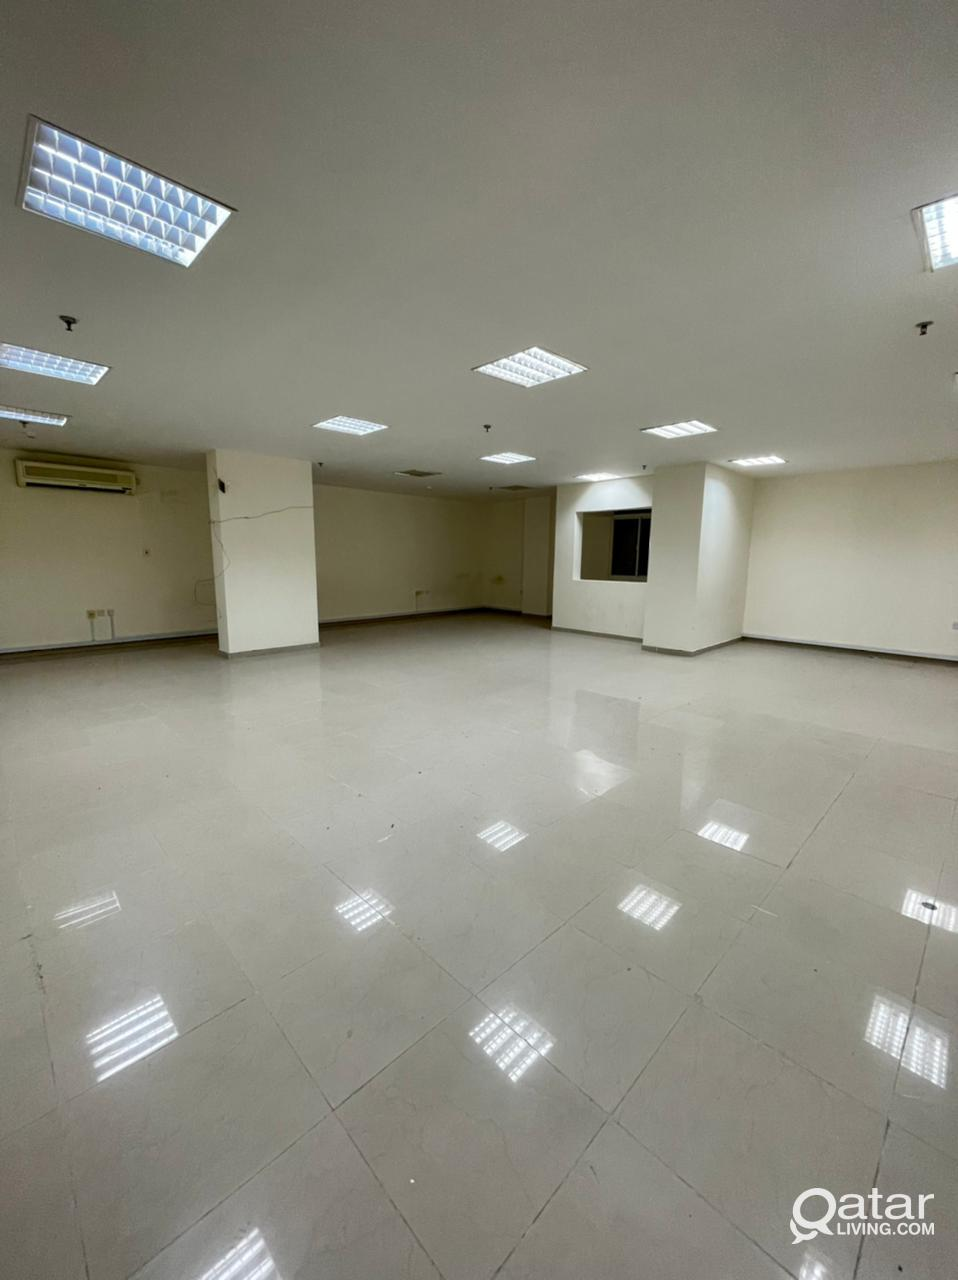 Special Offer !!Spacious office space available in